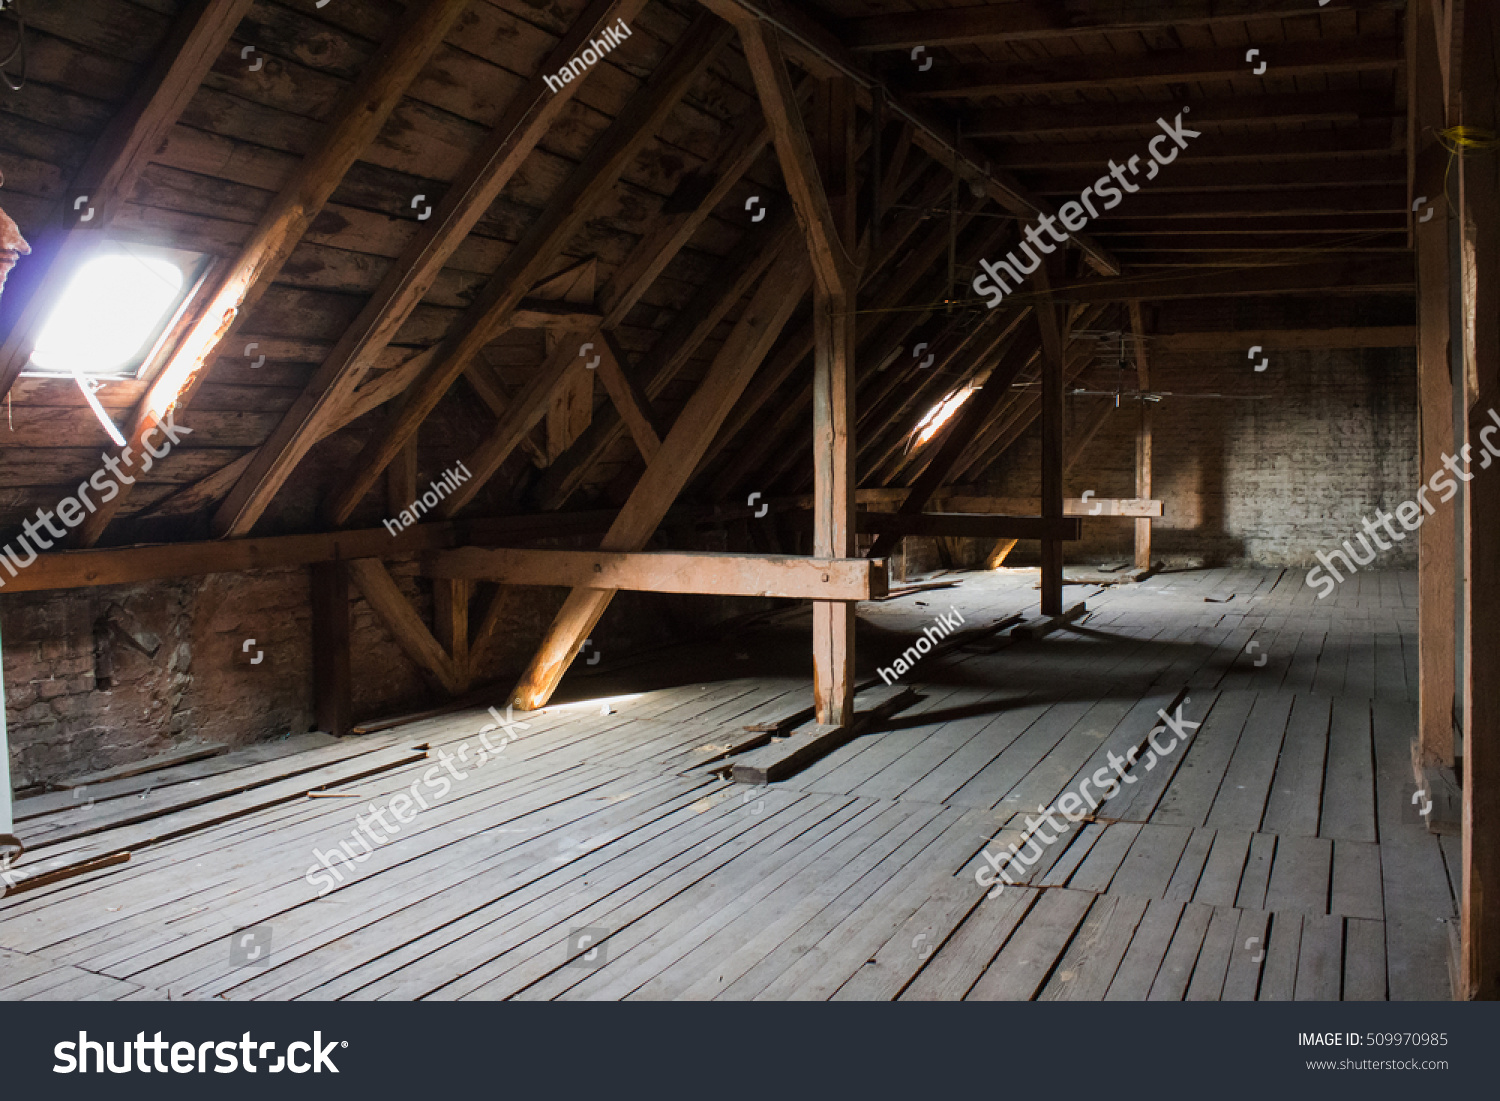 Attic Wooden Beams Old Loft Roof Stock Photo 509970985